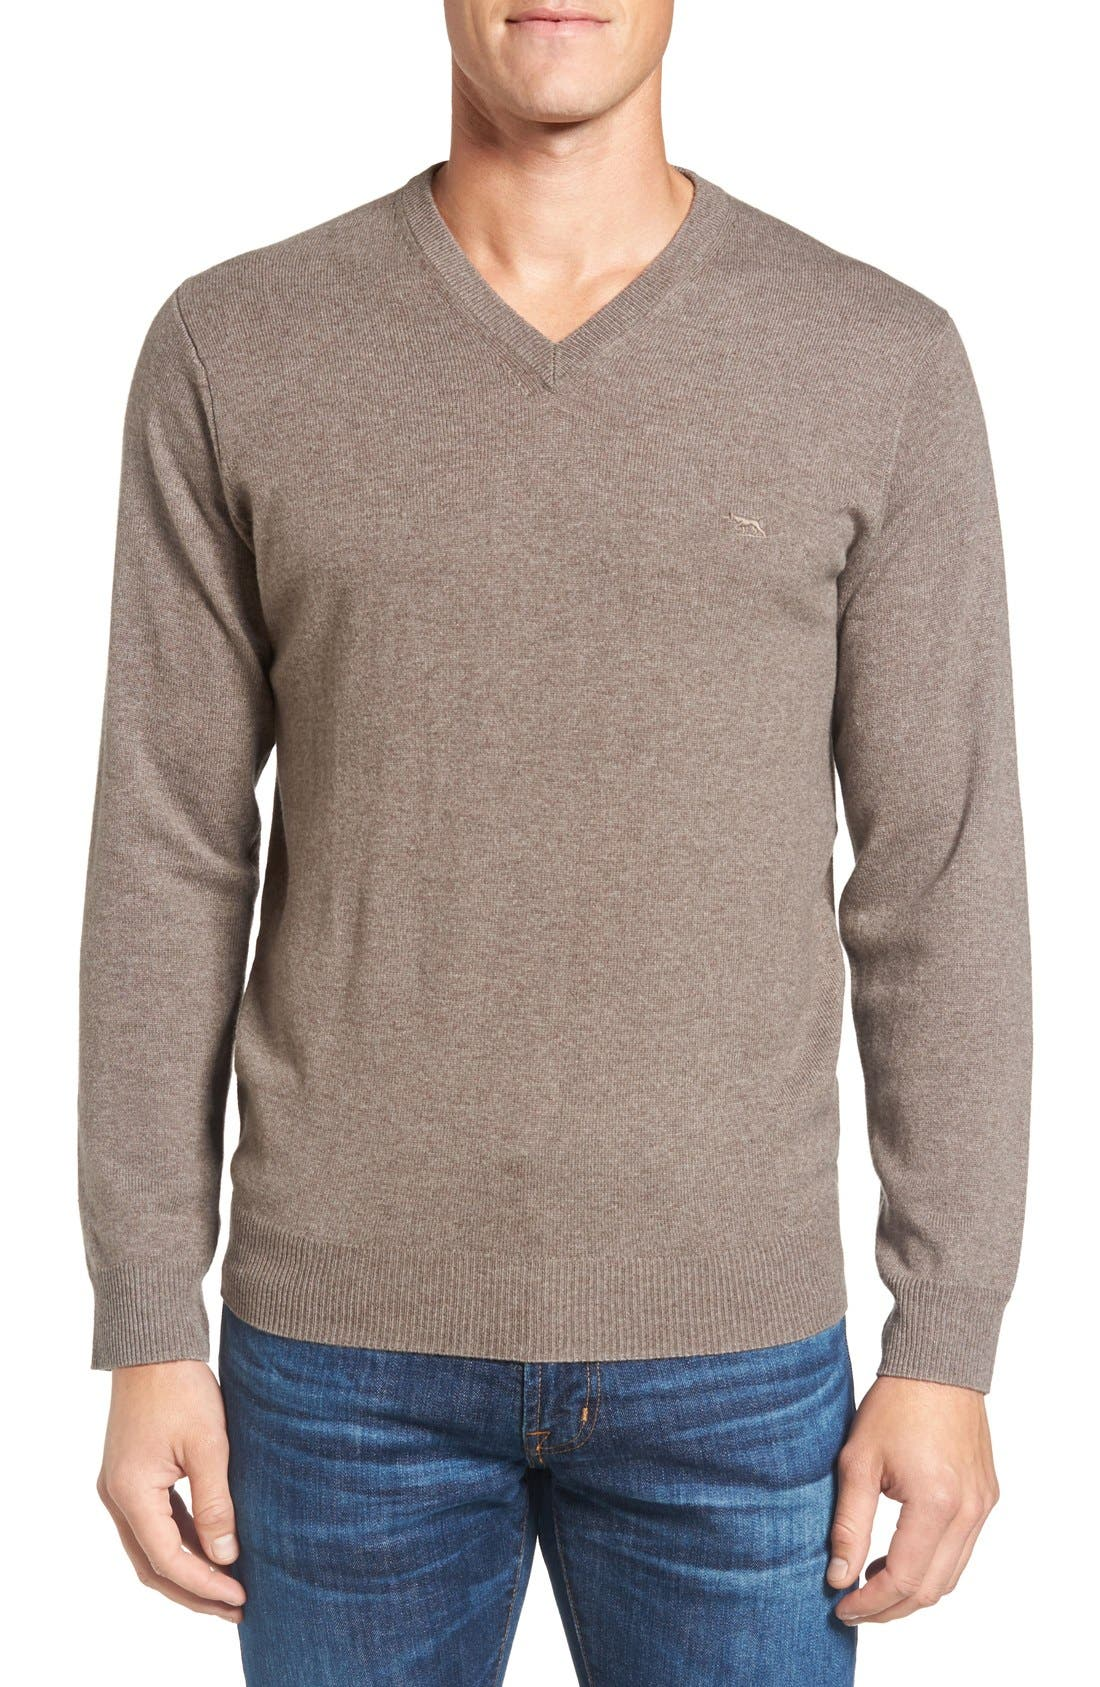 Rodd & Gunn 'Inchbonnie' Wool & Cashmere V-Neck Sweater